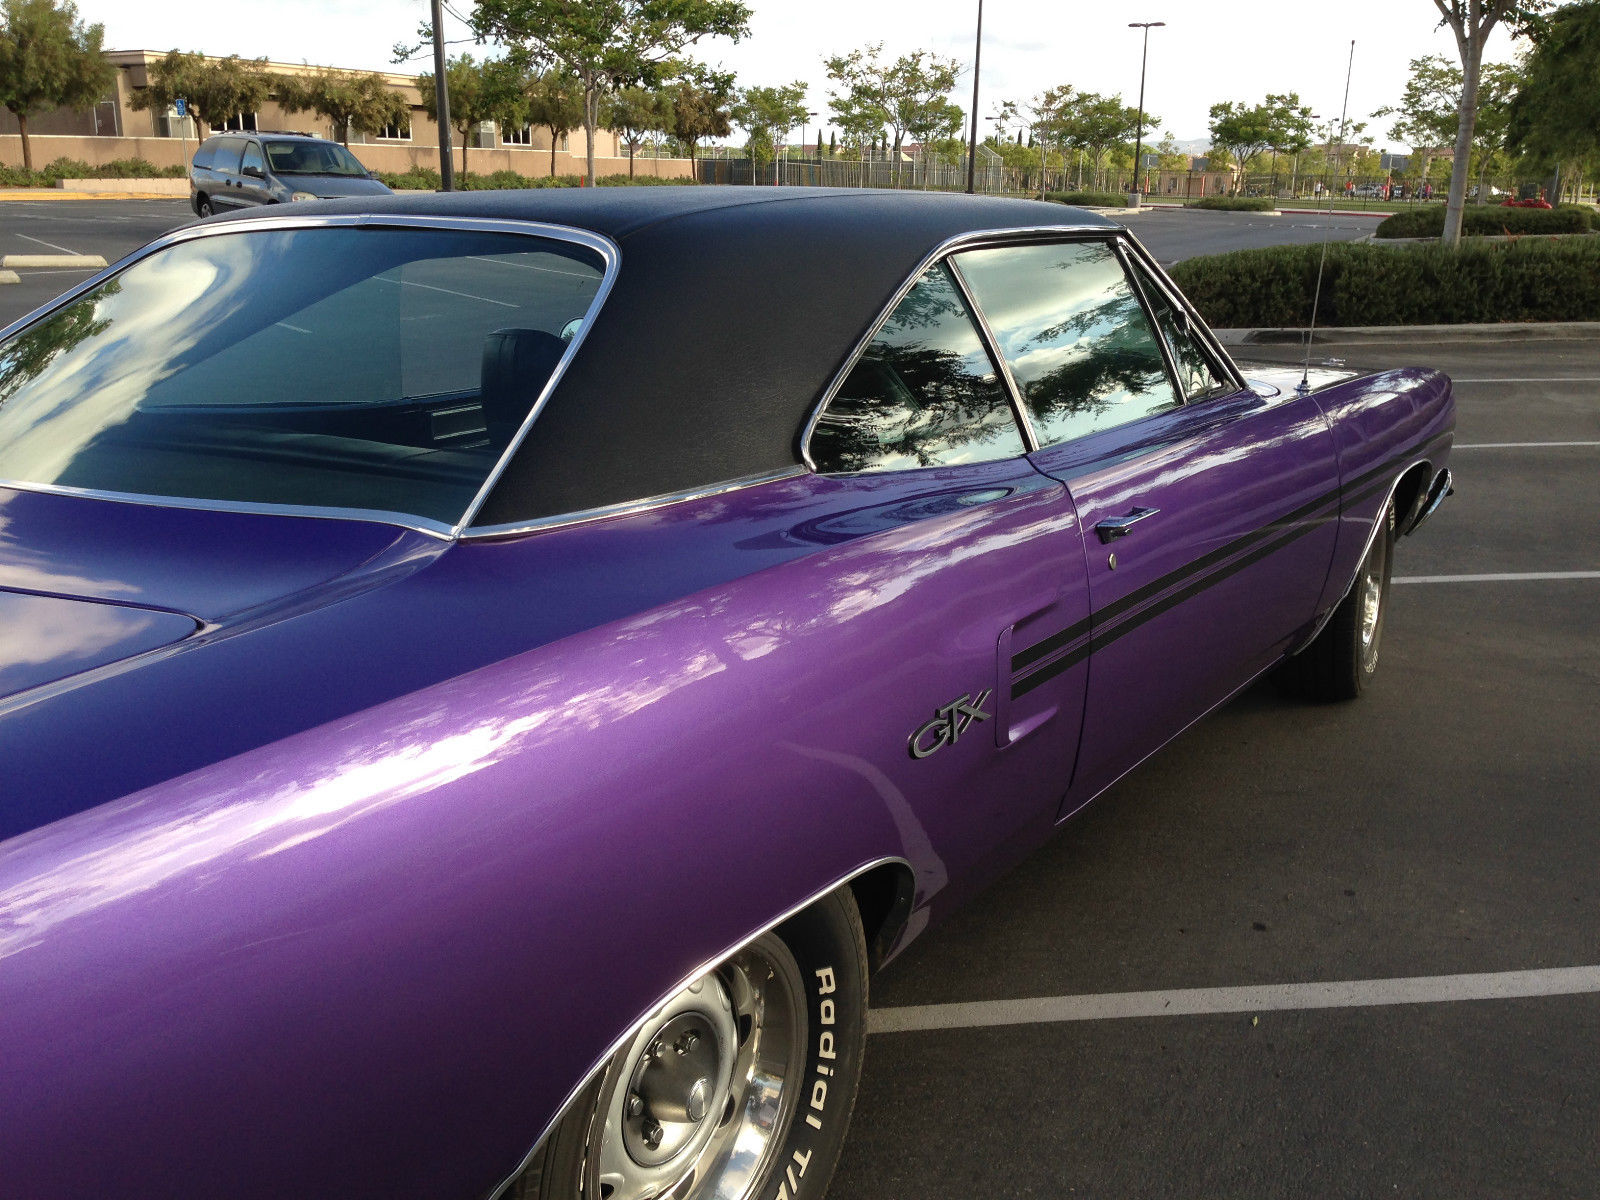 1970 Plymouth Gtx Great Condition 9 10 Purple With Black